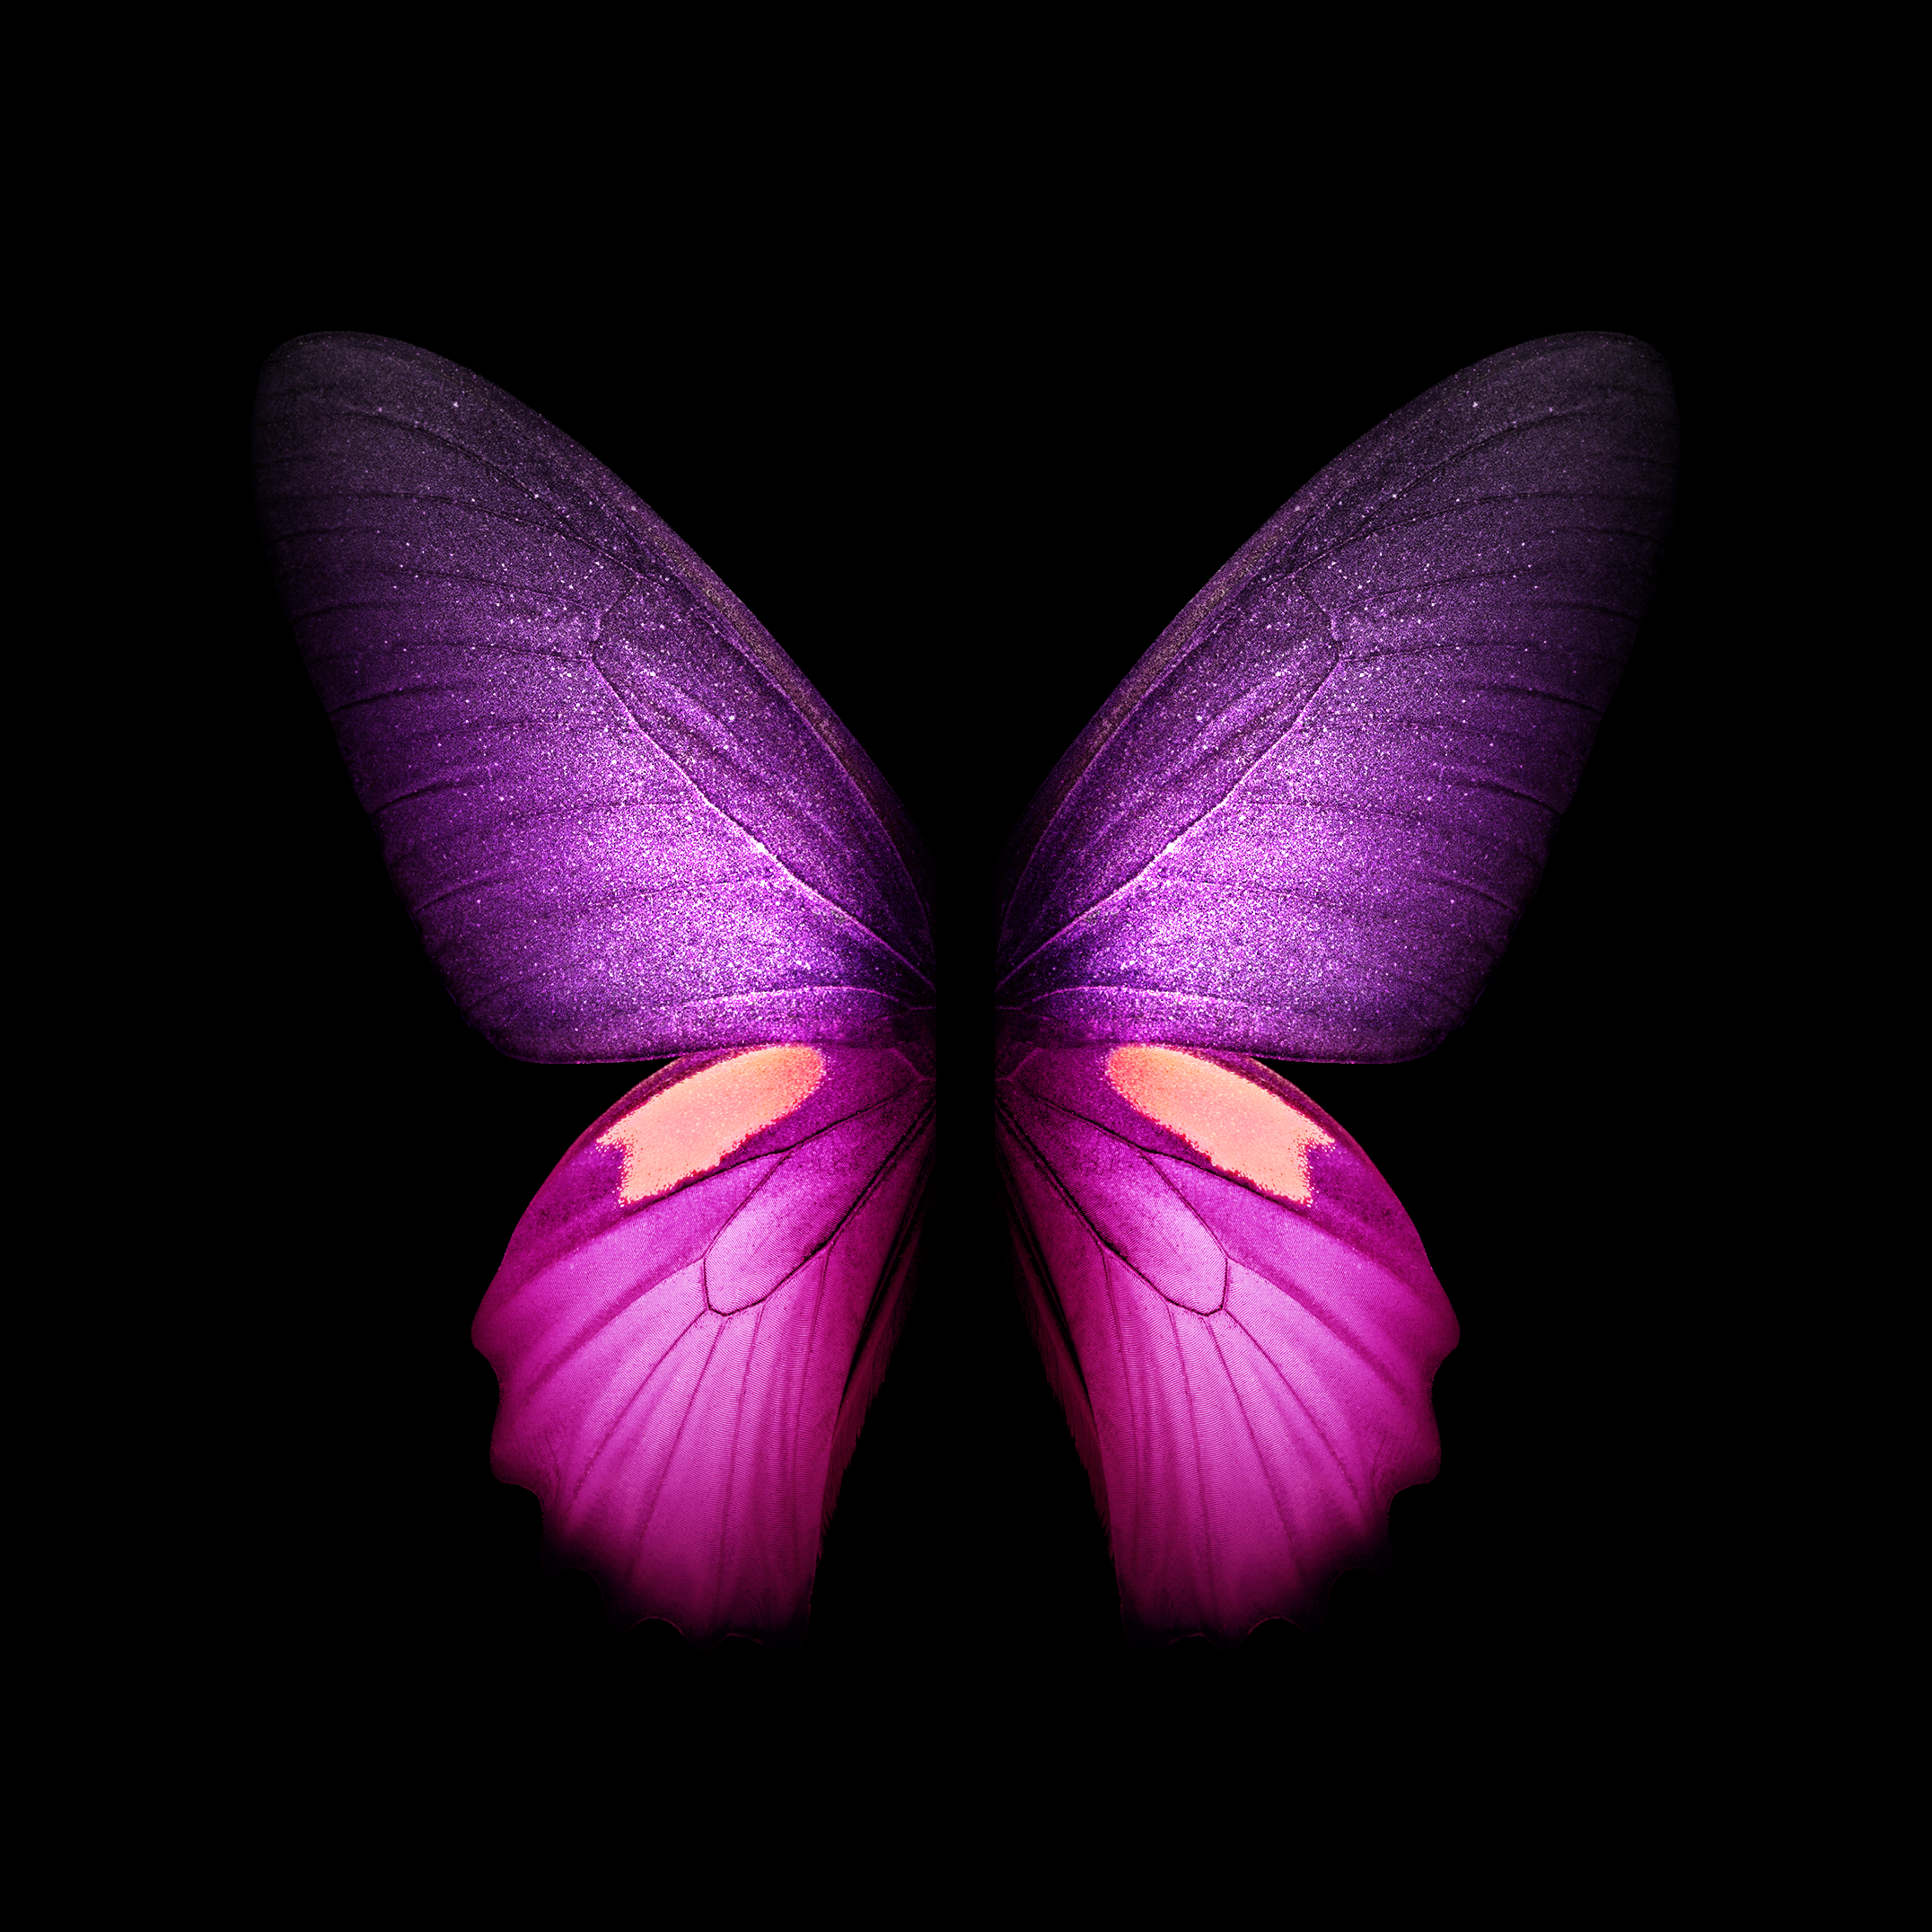 Butterfly Wallpaper Iphone X 2152x2152 Wallpaper Teahub Io